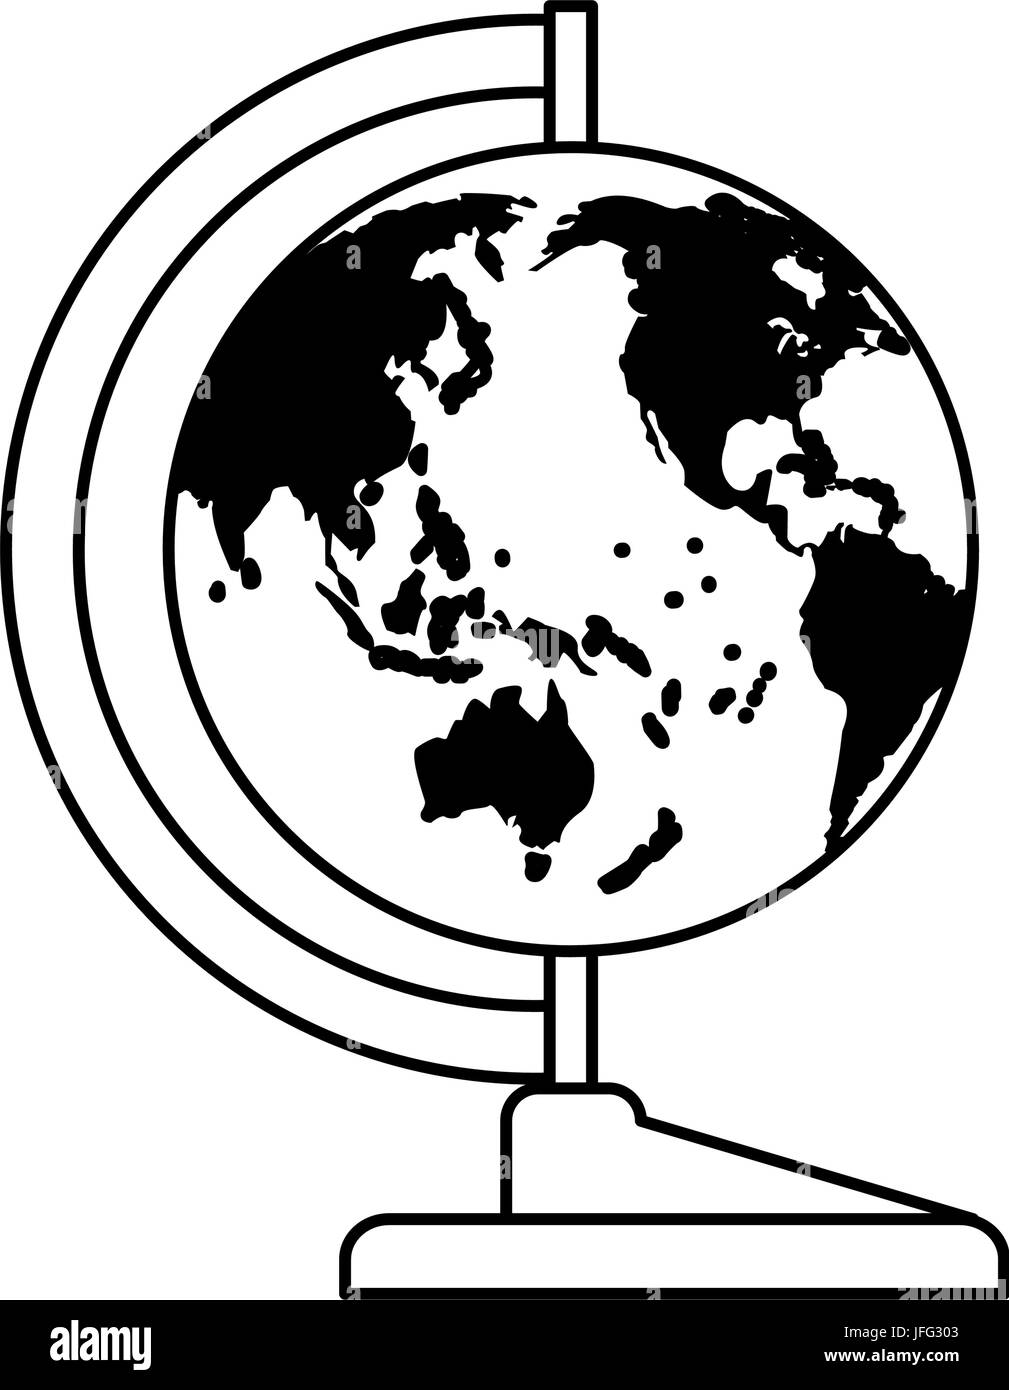 World map teach accessory - Stock Image